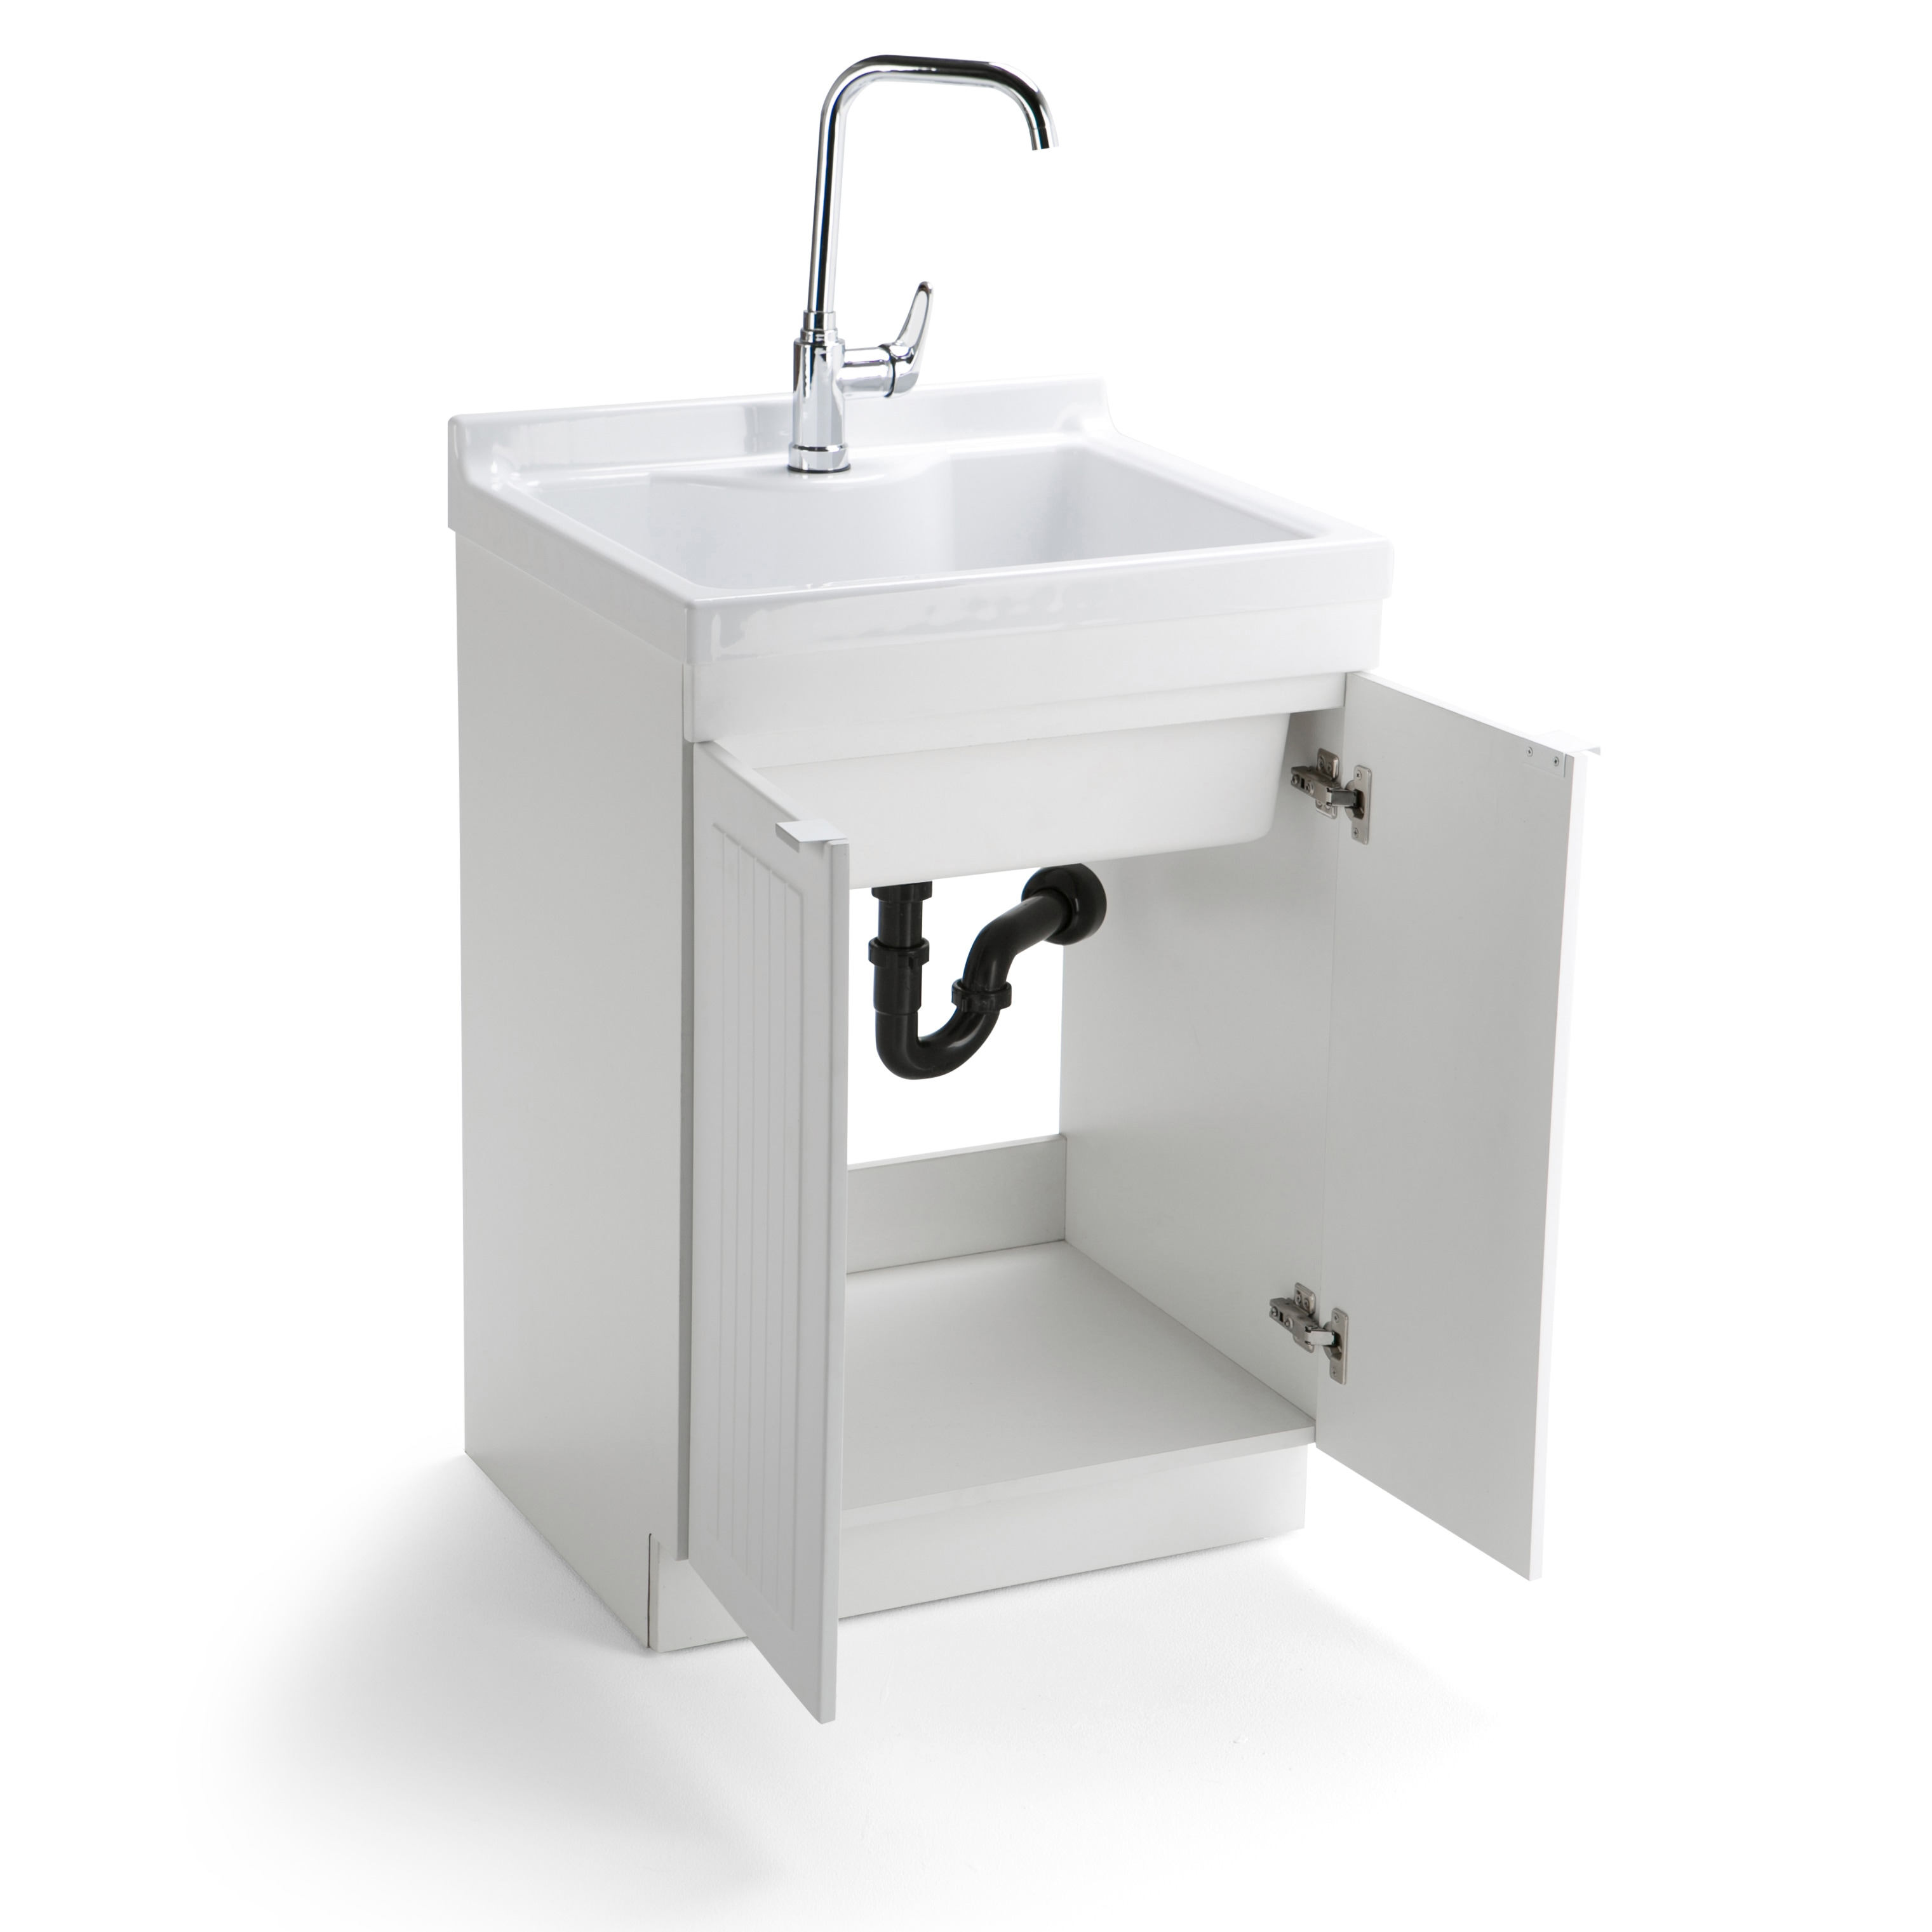 Wyndenhall Bi 24 Inch Laundry Cabinet With Faucet And Abs Sink On Free Shipping Today 11915486